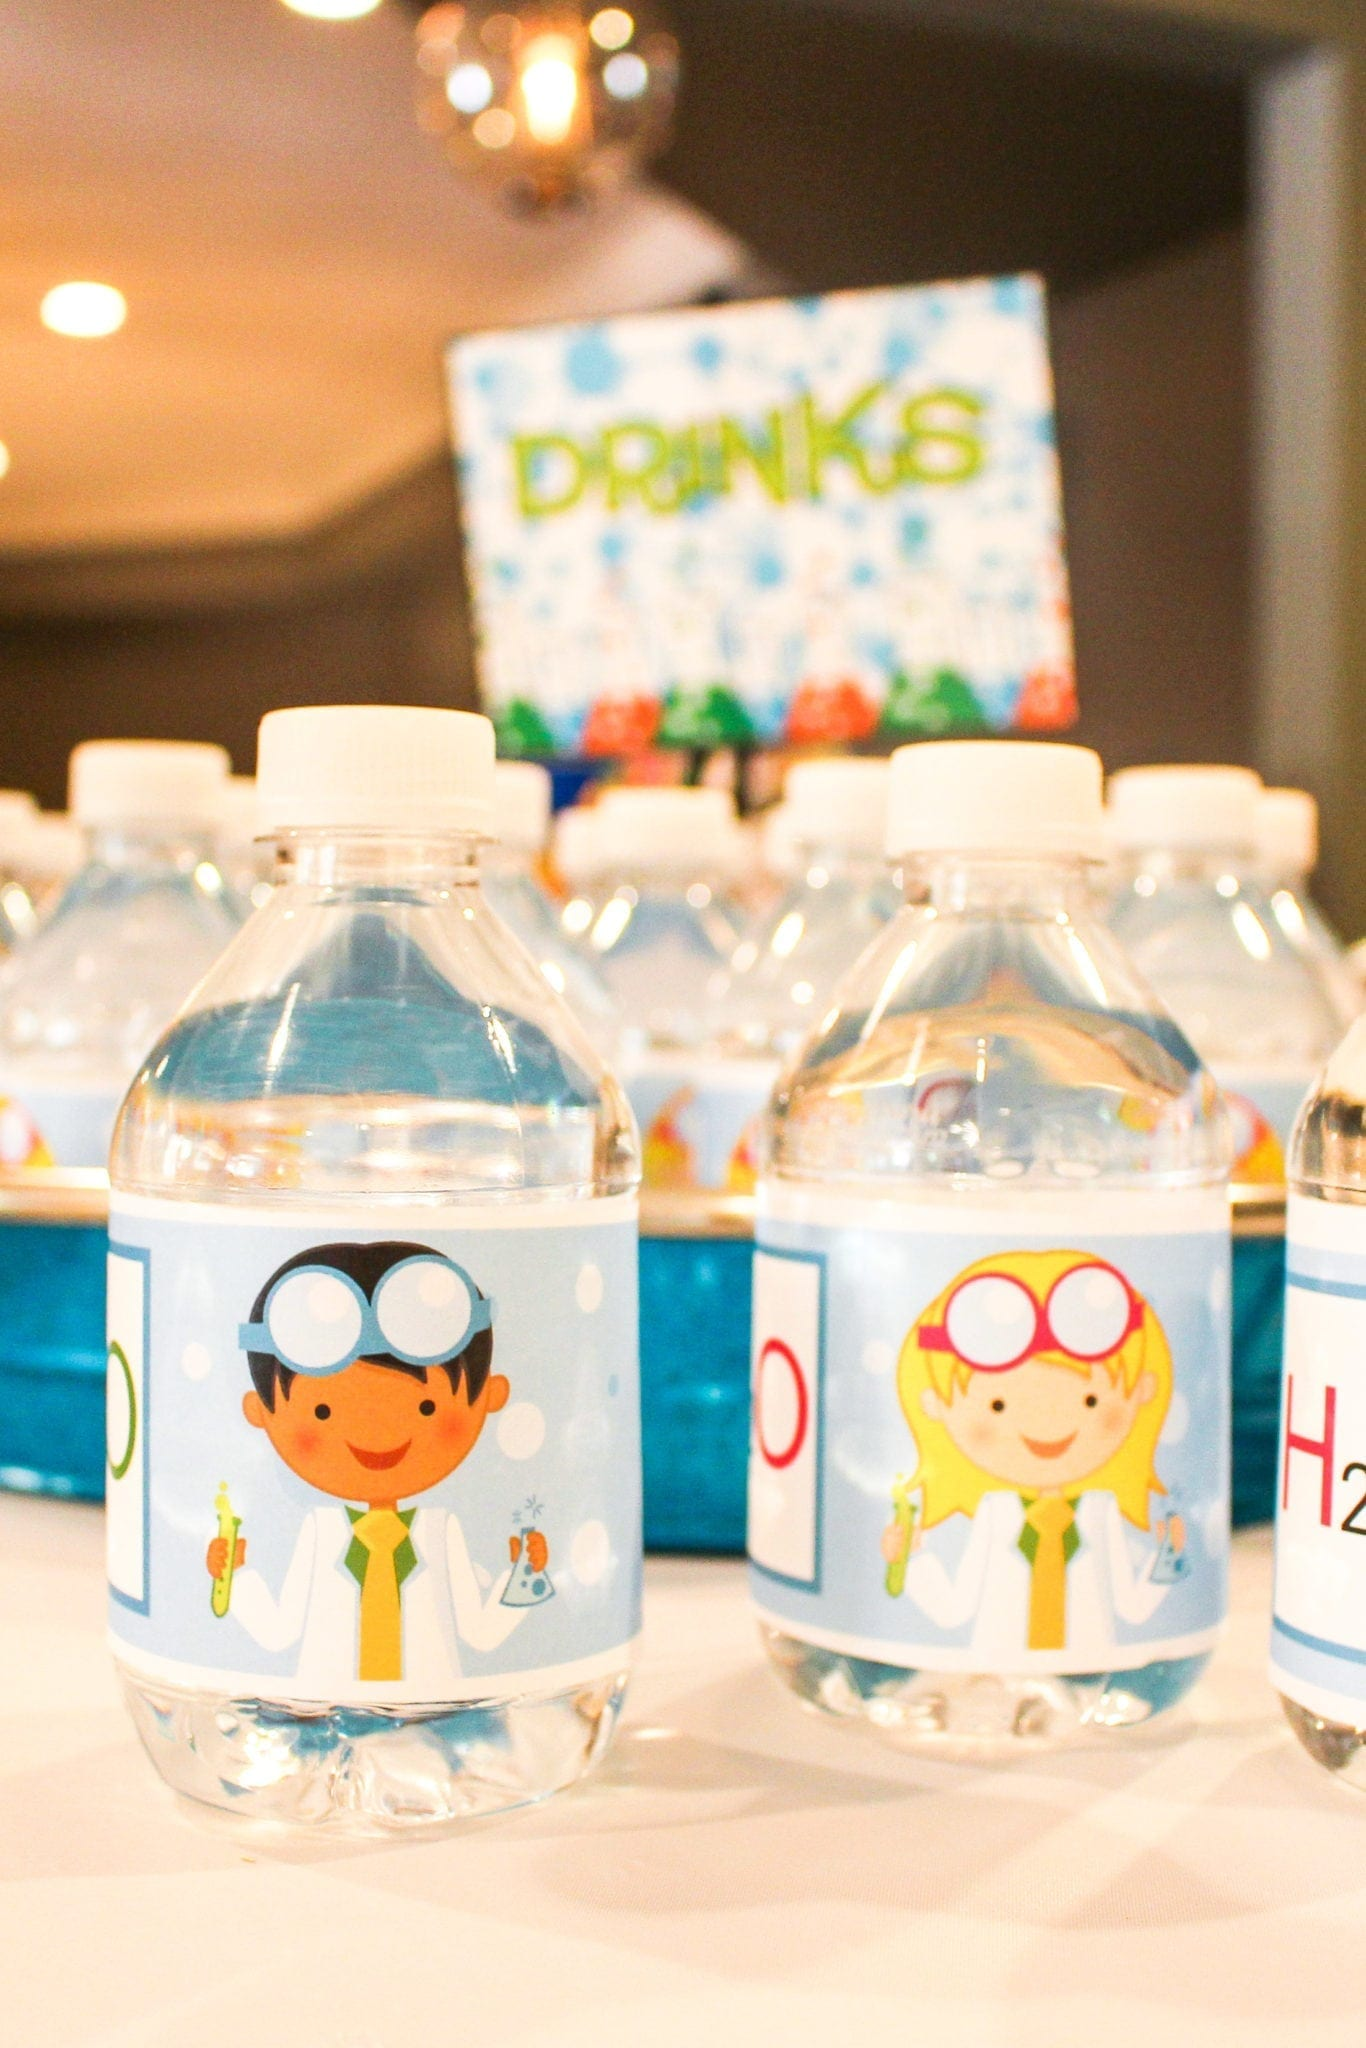 Science printable for water bottles. Quick and fun ways to throw a science party for your family!